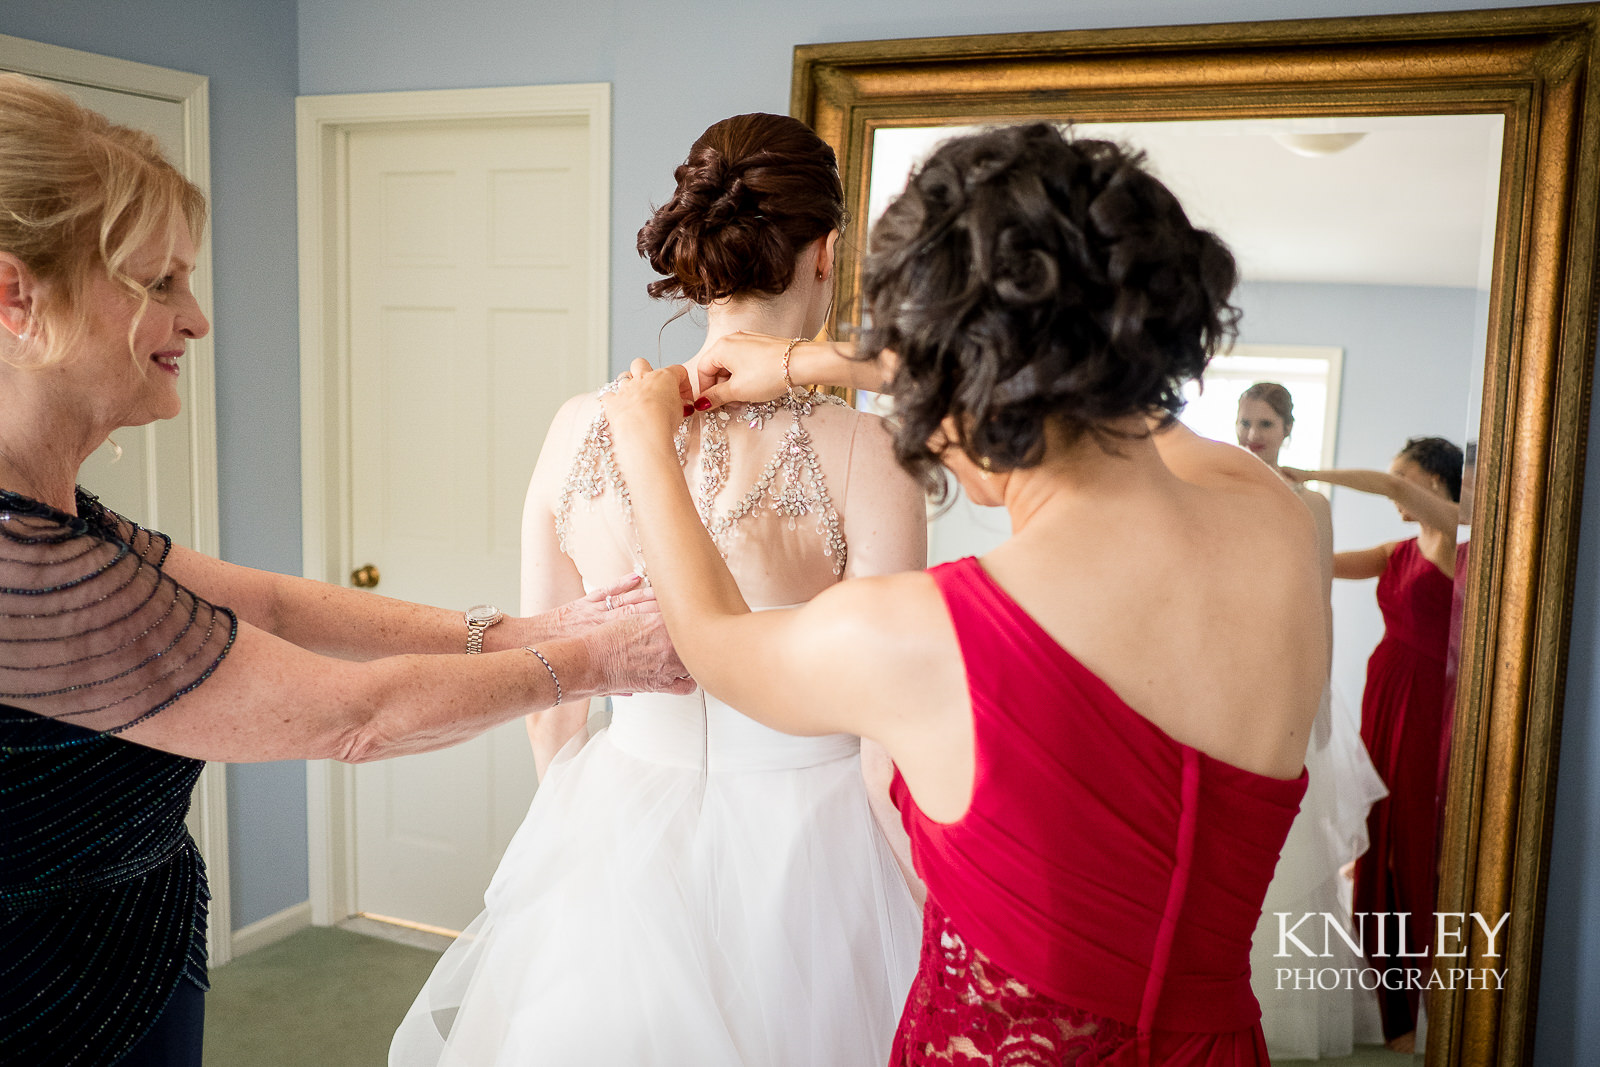 024 - Rochester NY wedding pictures - Genesee Valley Club - Ceremony and Reception - XT2A5276.jpg